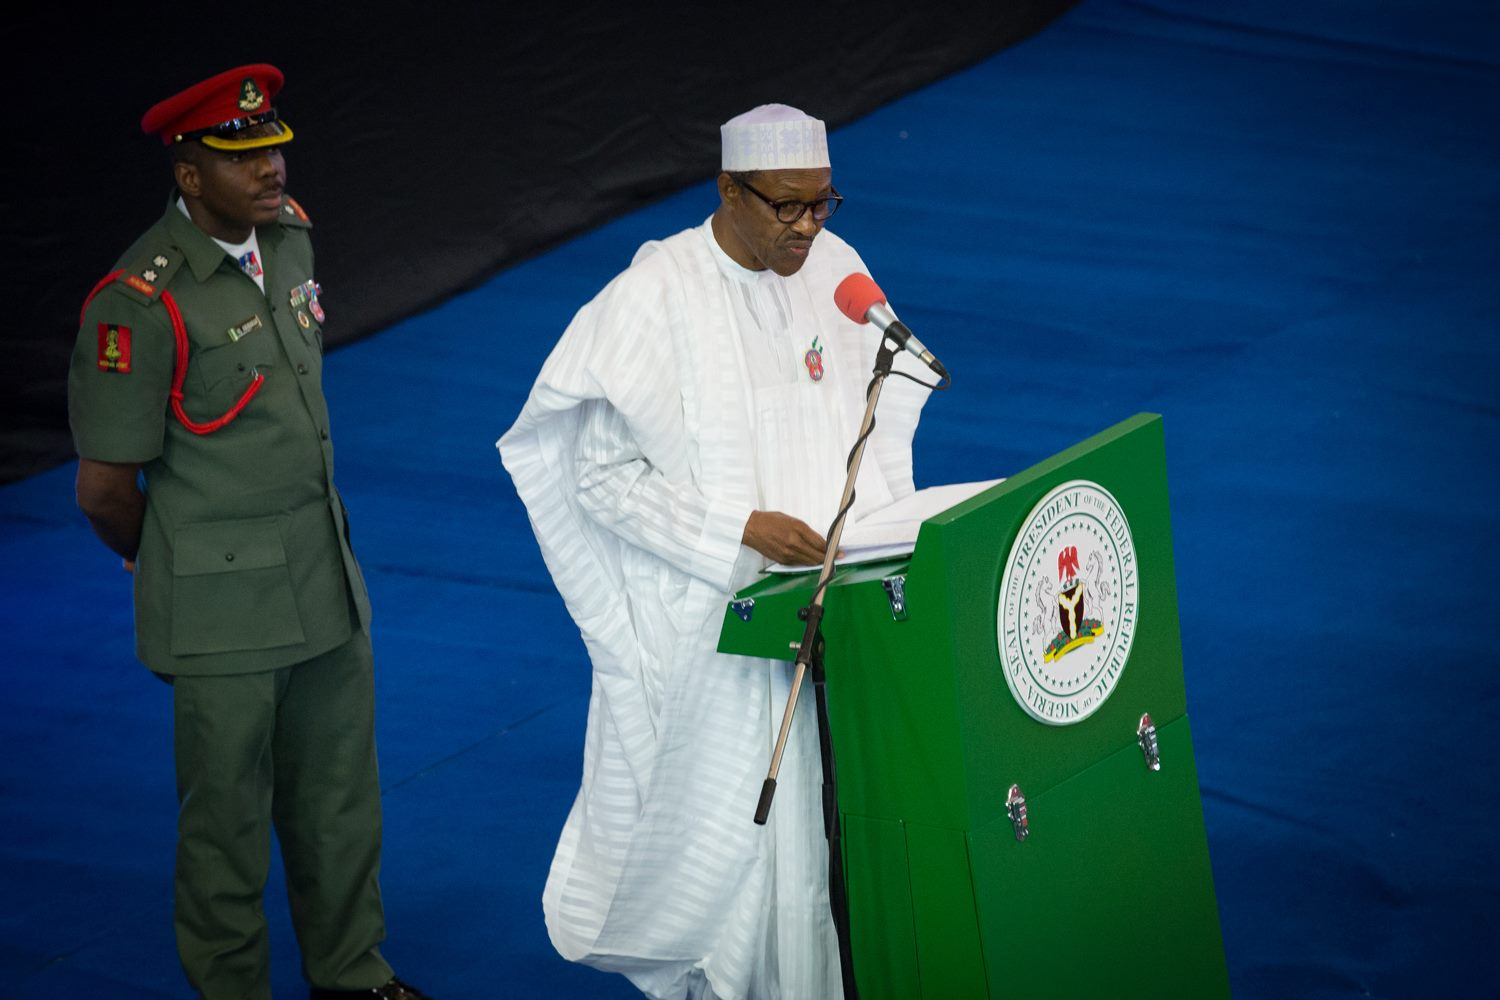 #WarAgainstCorruption : President Buhari to Released Looters Names by May 29